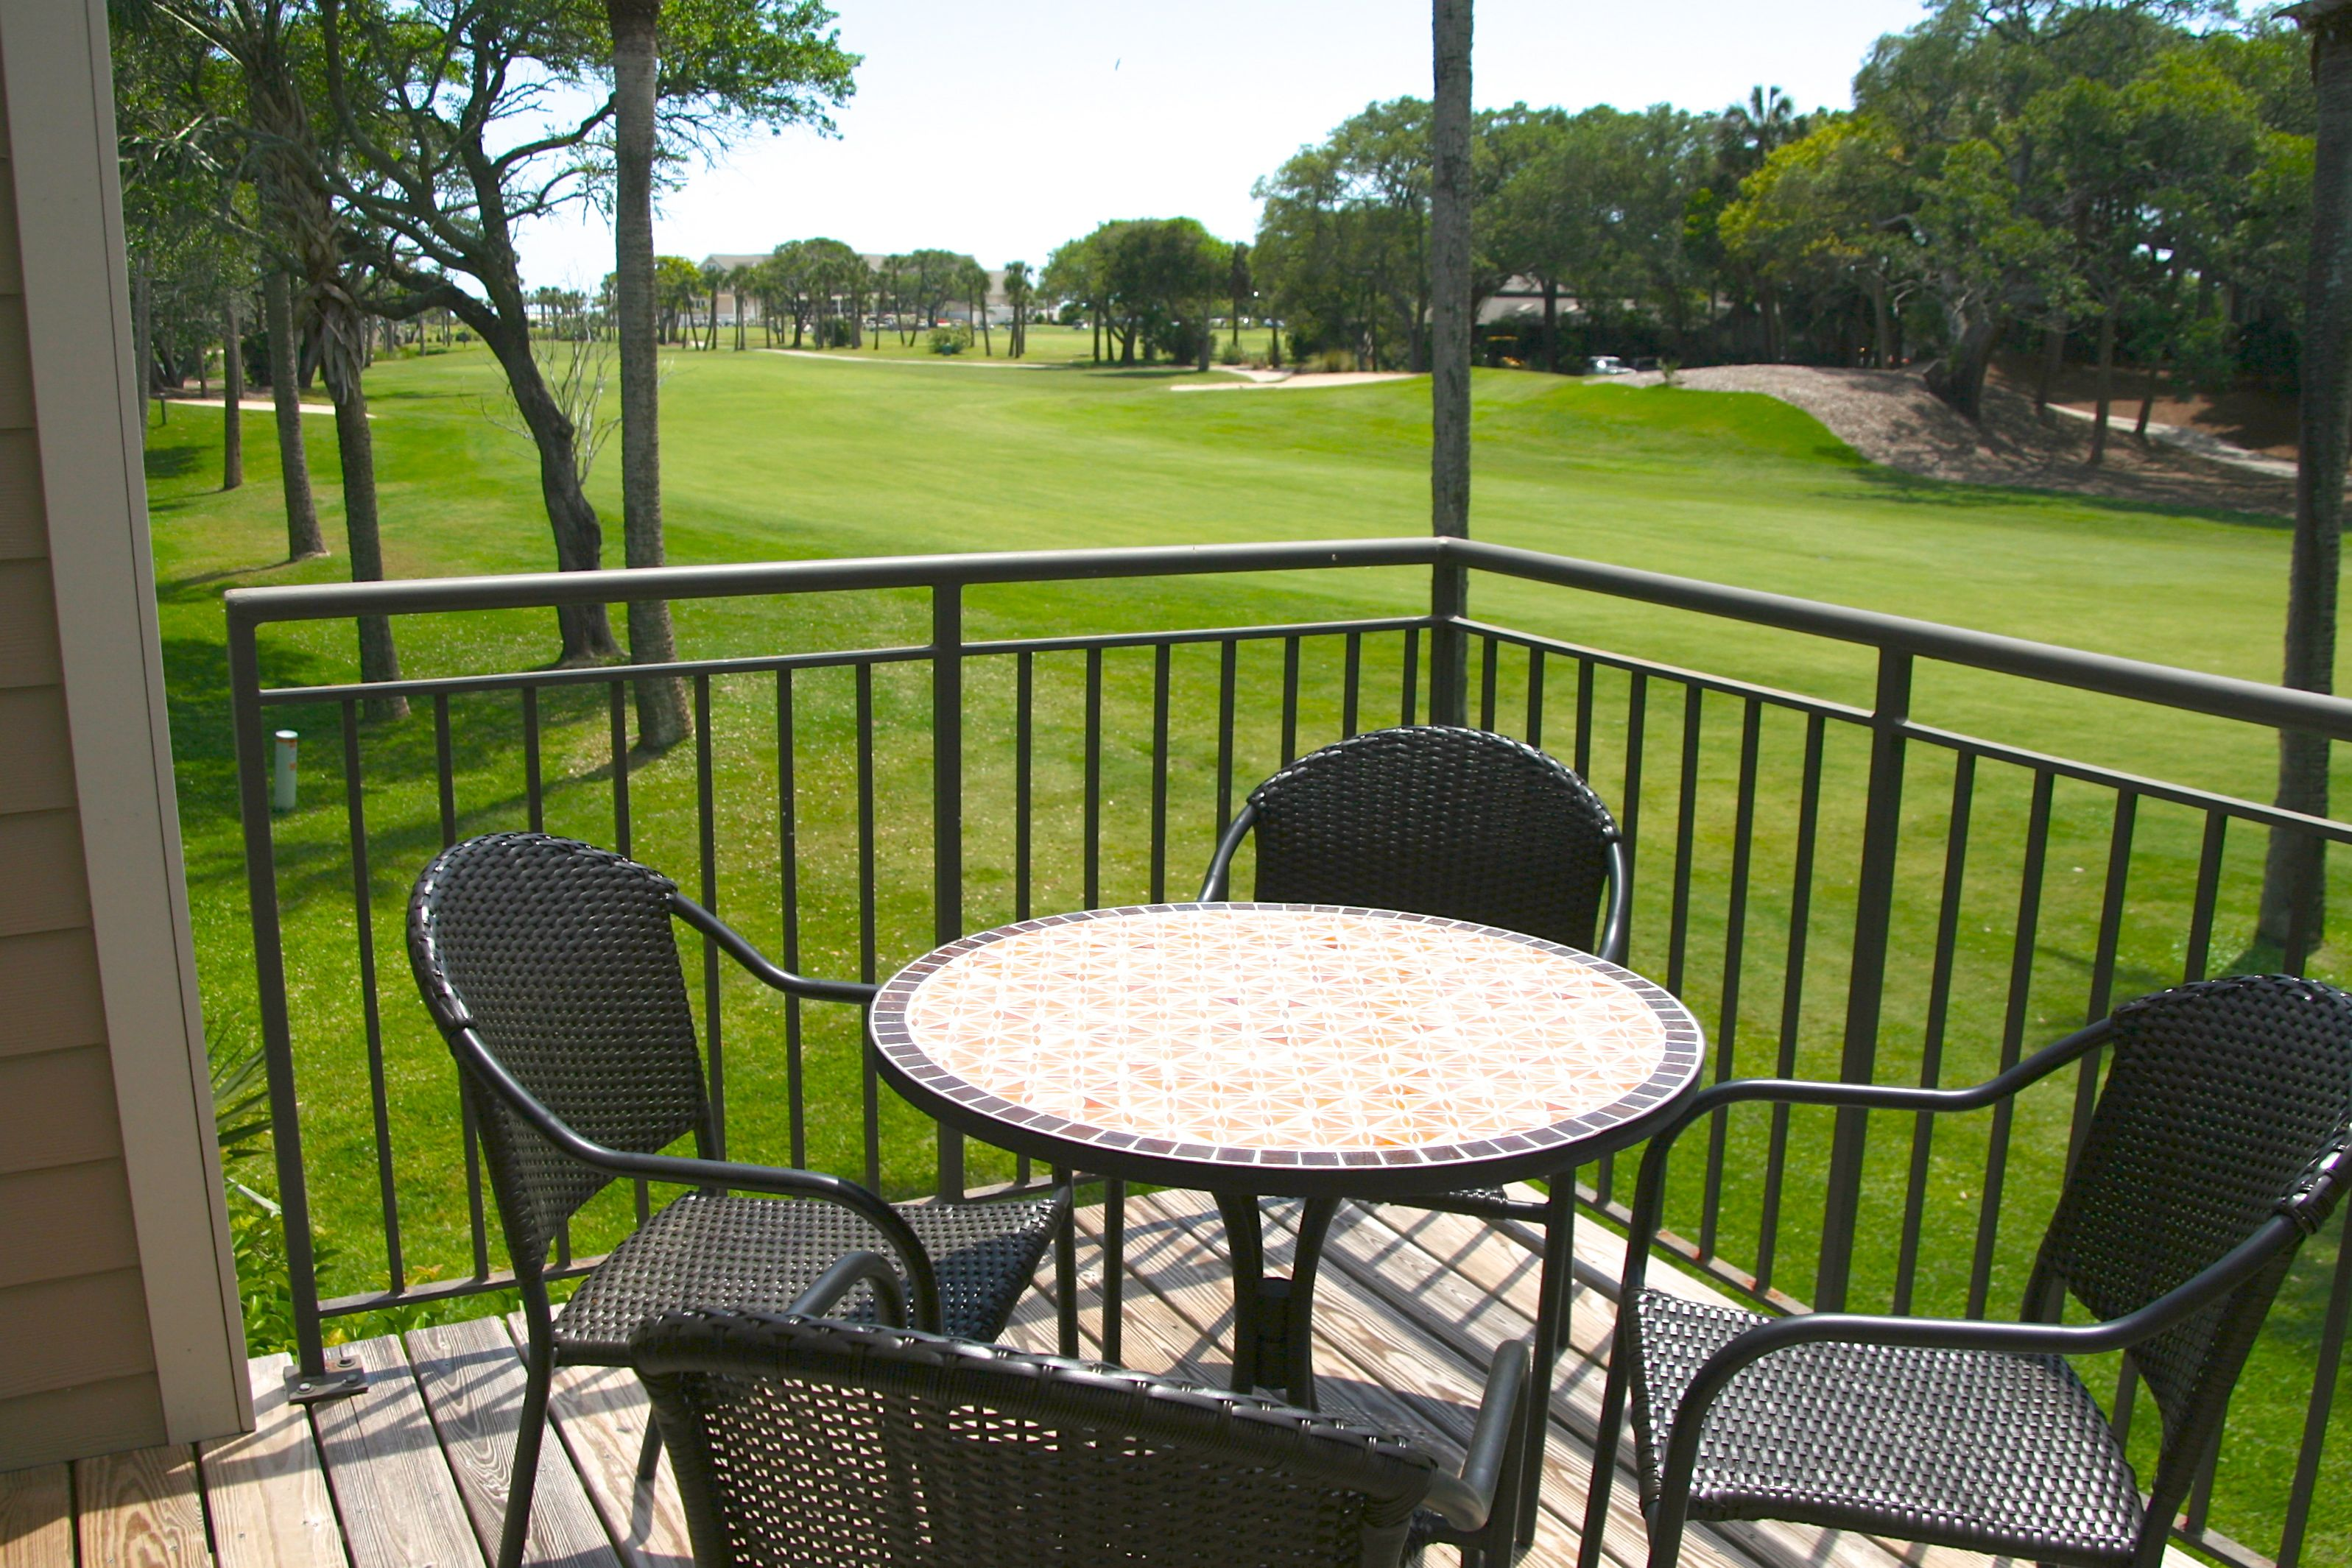 Grab a cool drink & watch the golfers start their rounds.